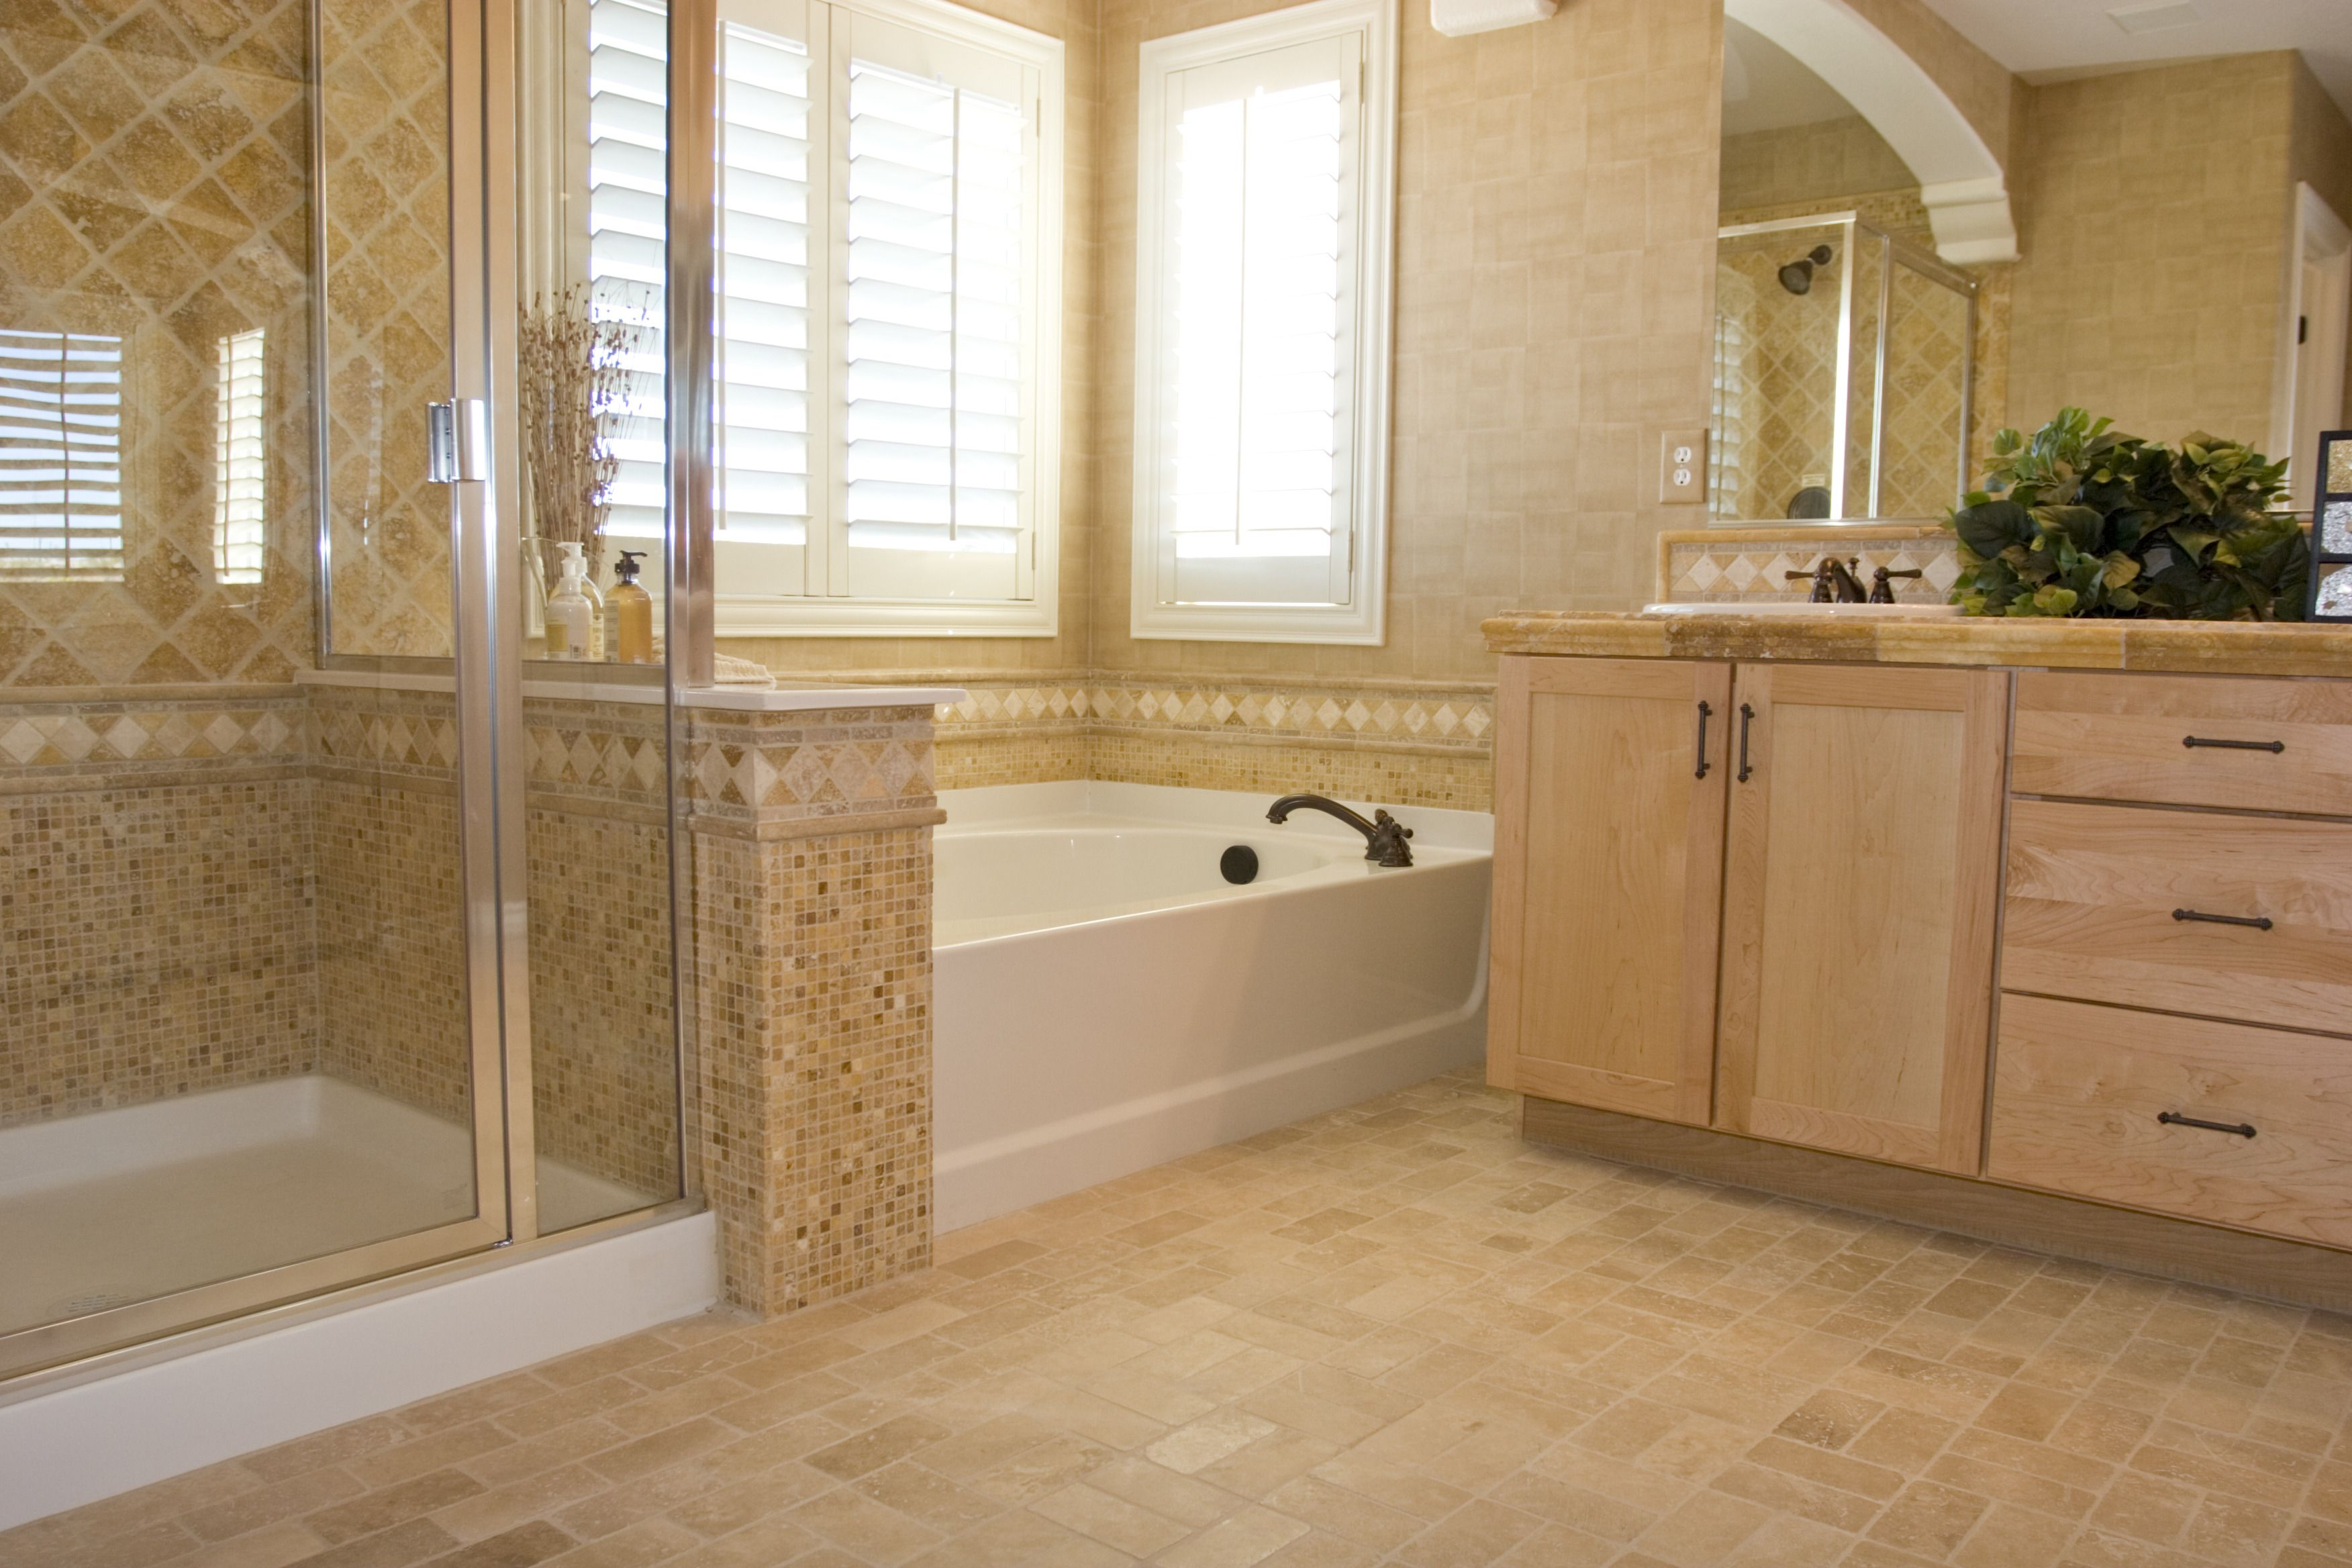 ... Beautiful And Good Looking Bathroom With Travertine ...